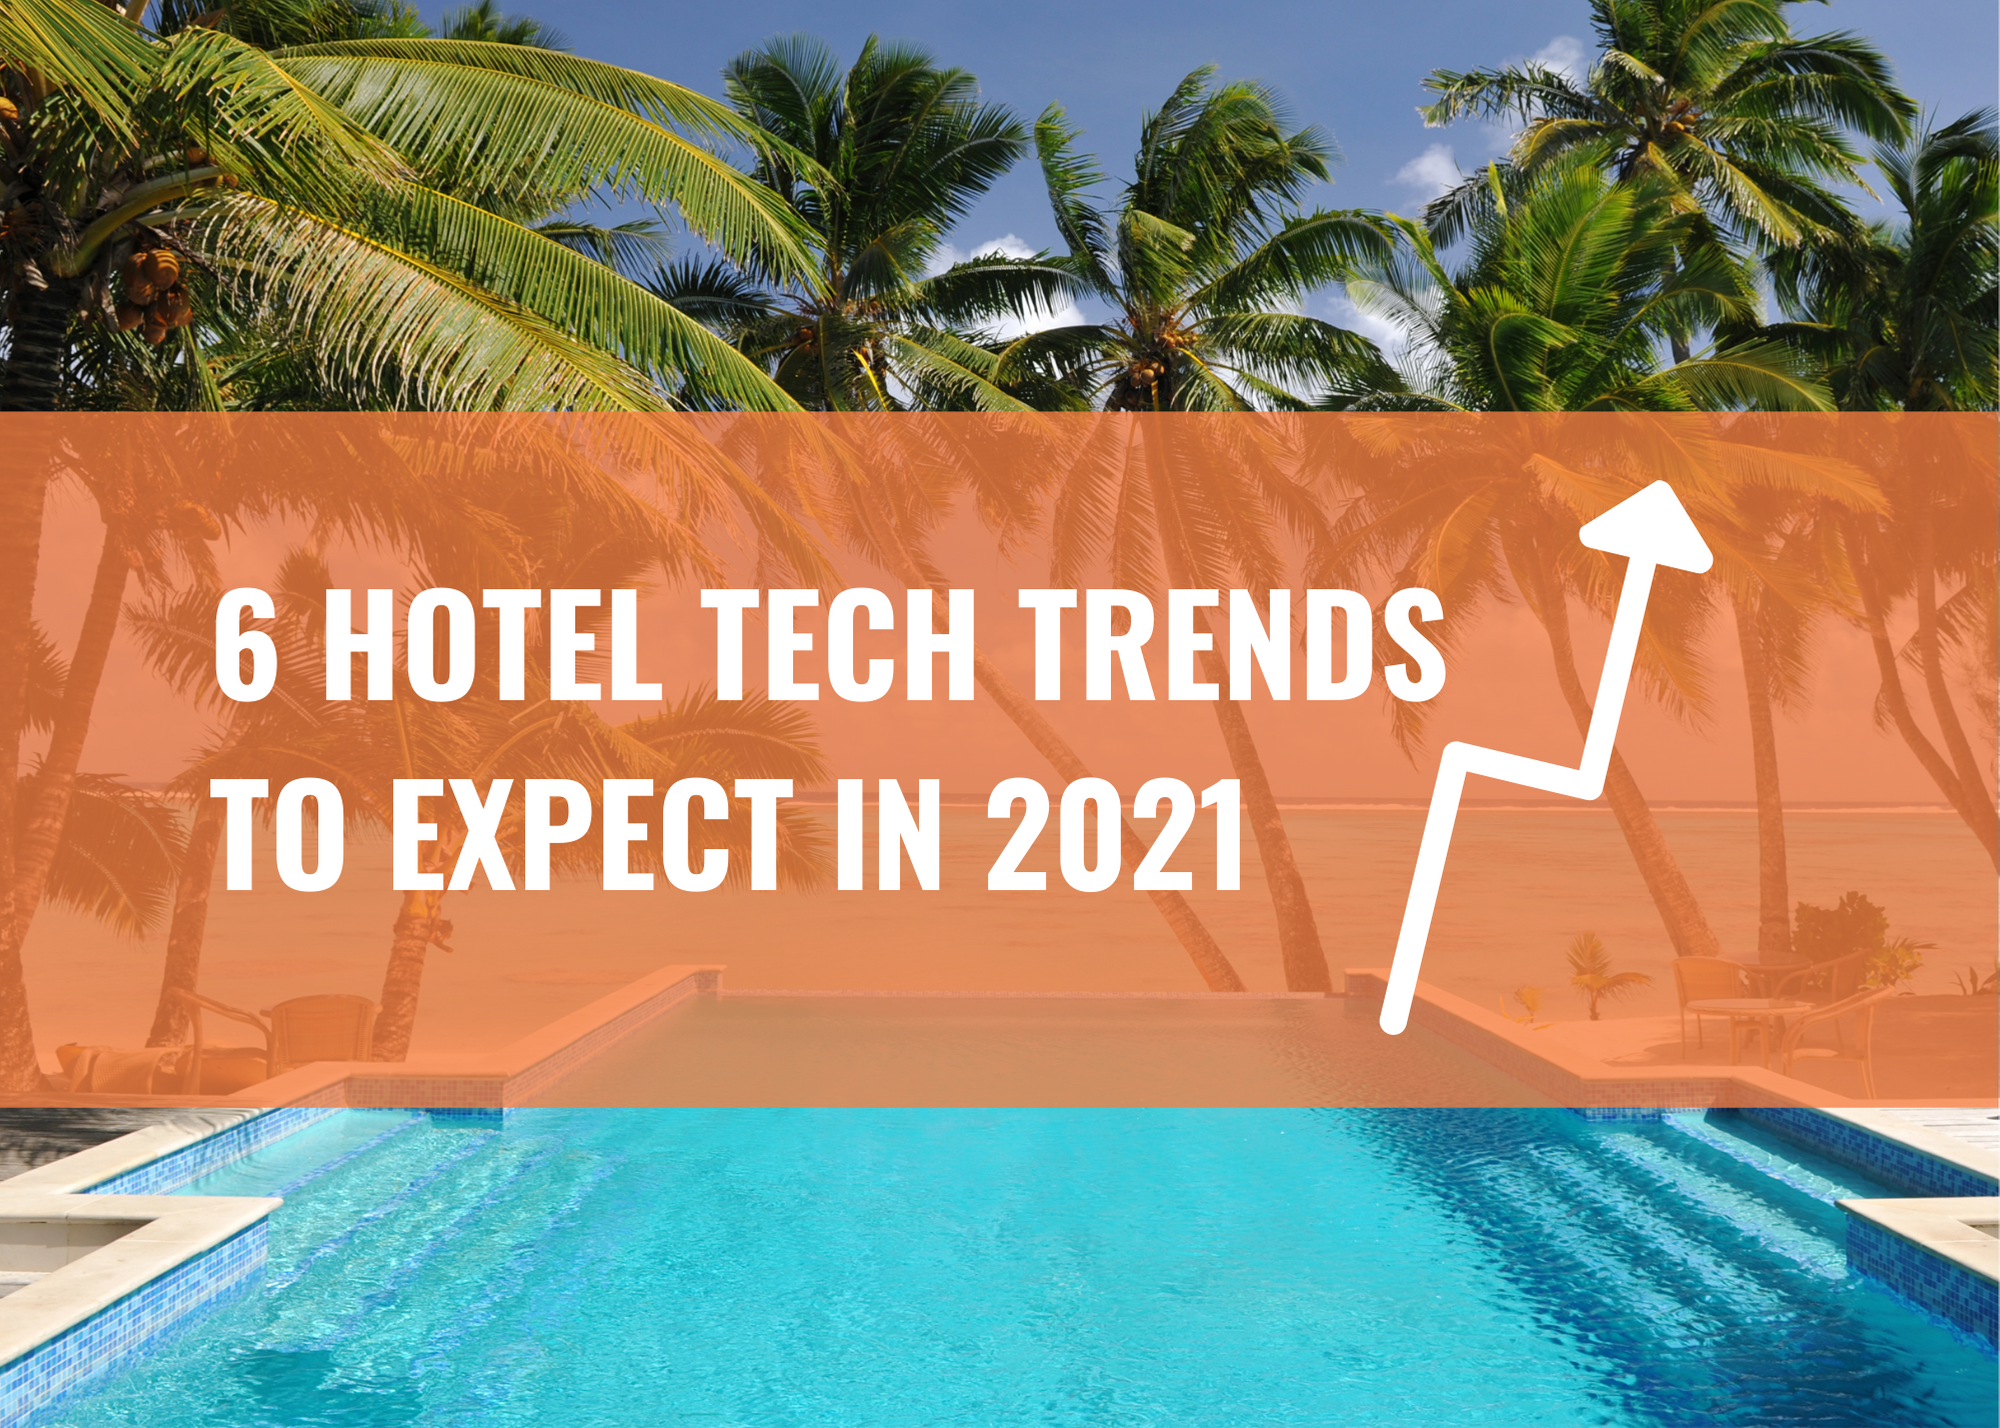 6 Hotel Trends to Watch in 2021